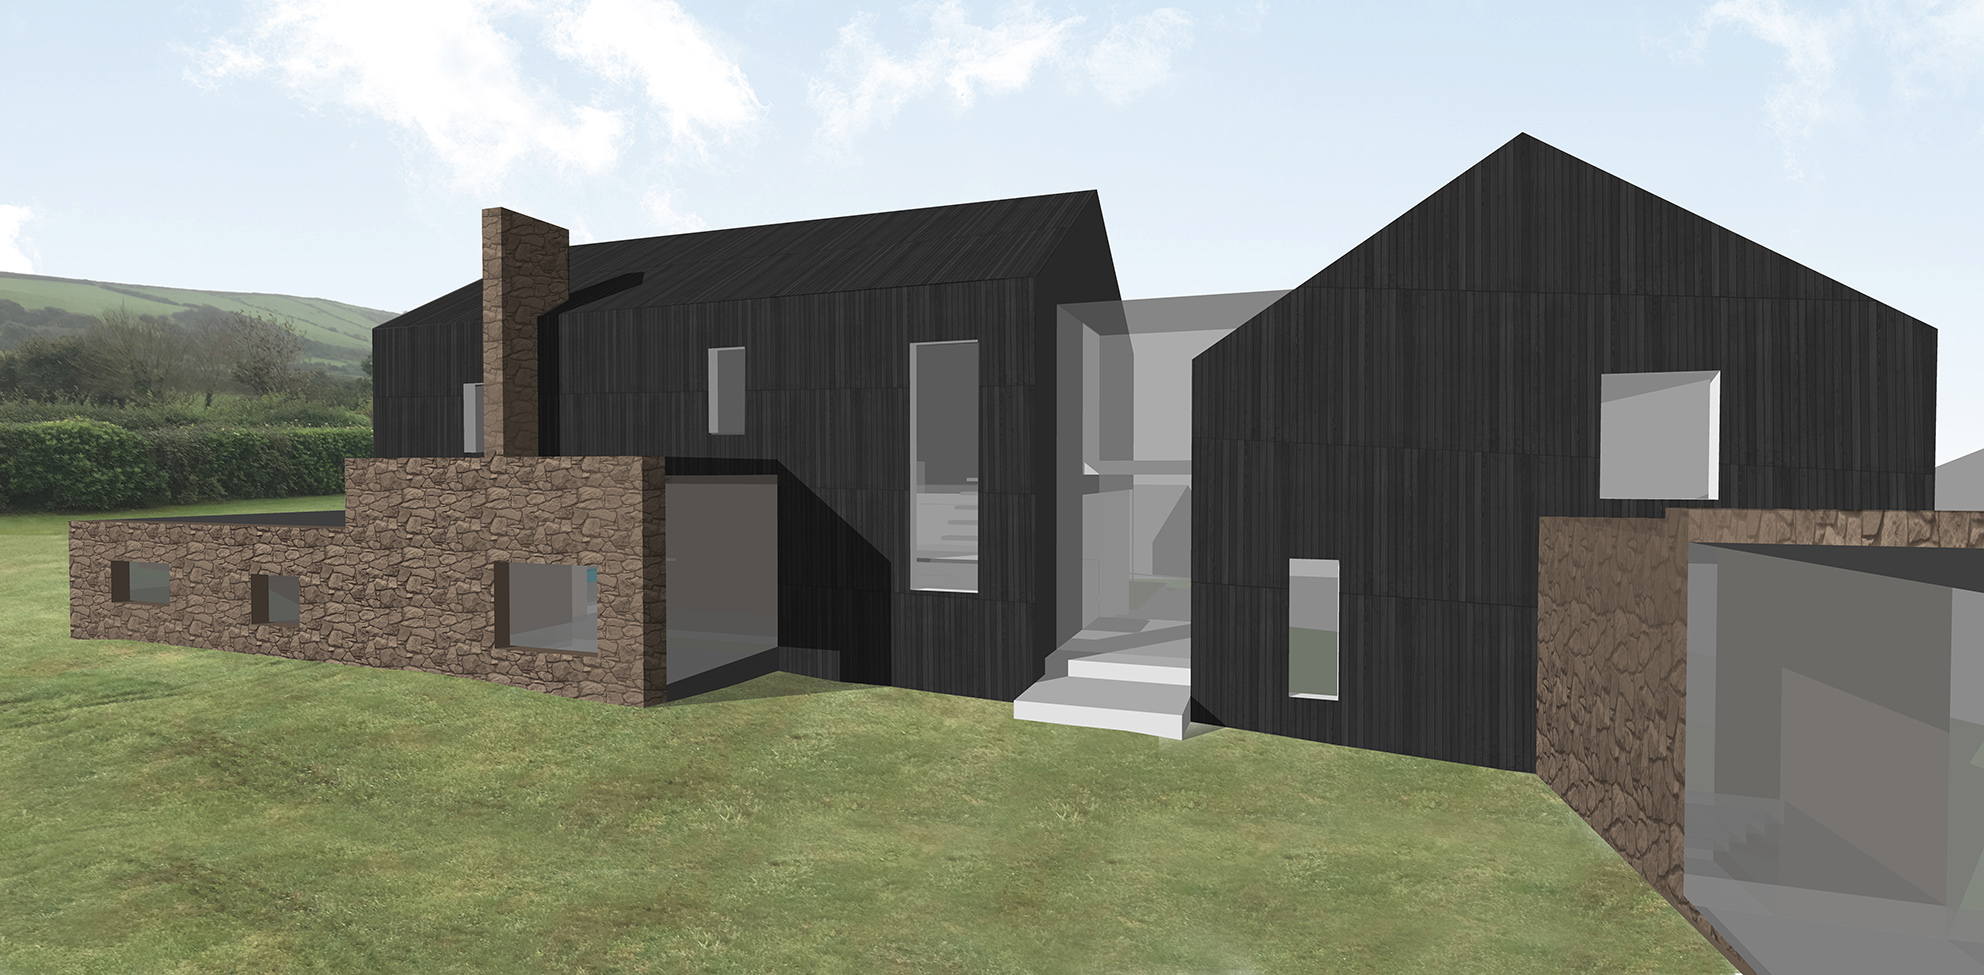 THE CROFT - An exciting new bespoke family home